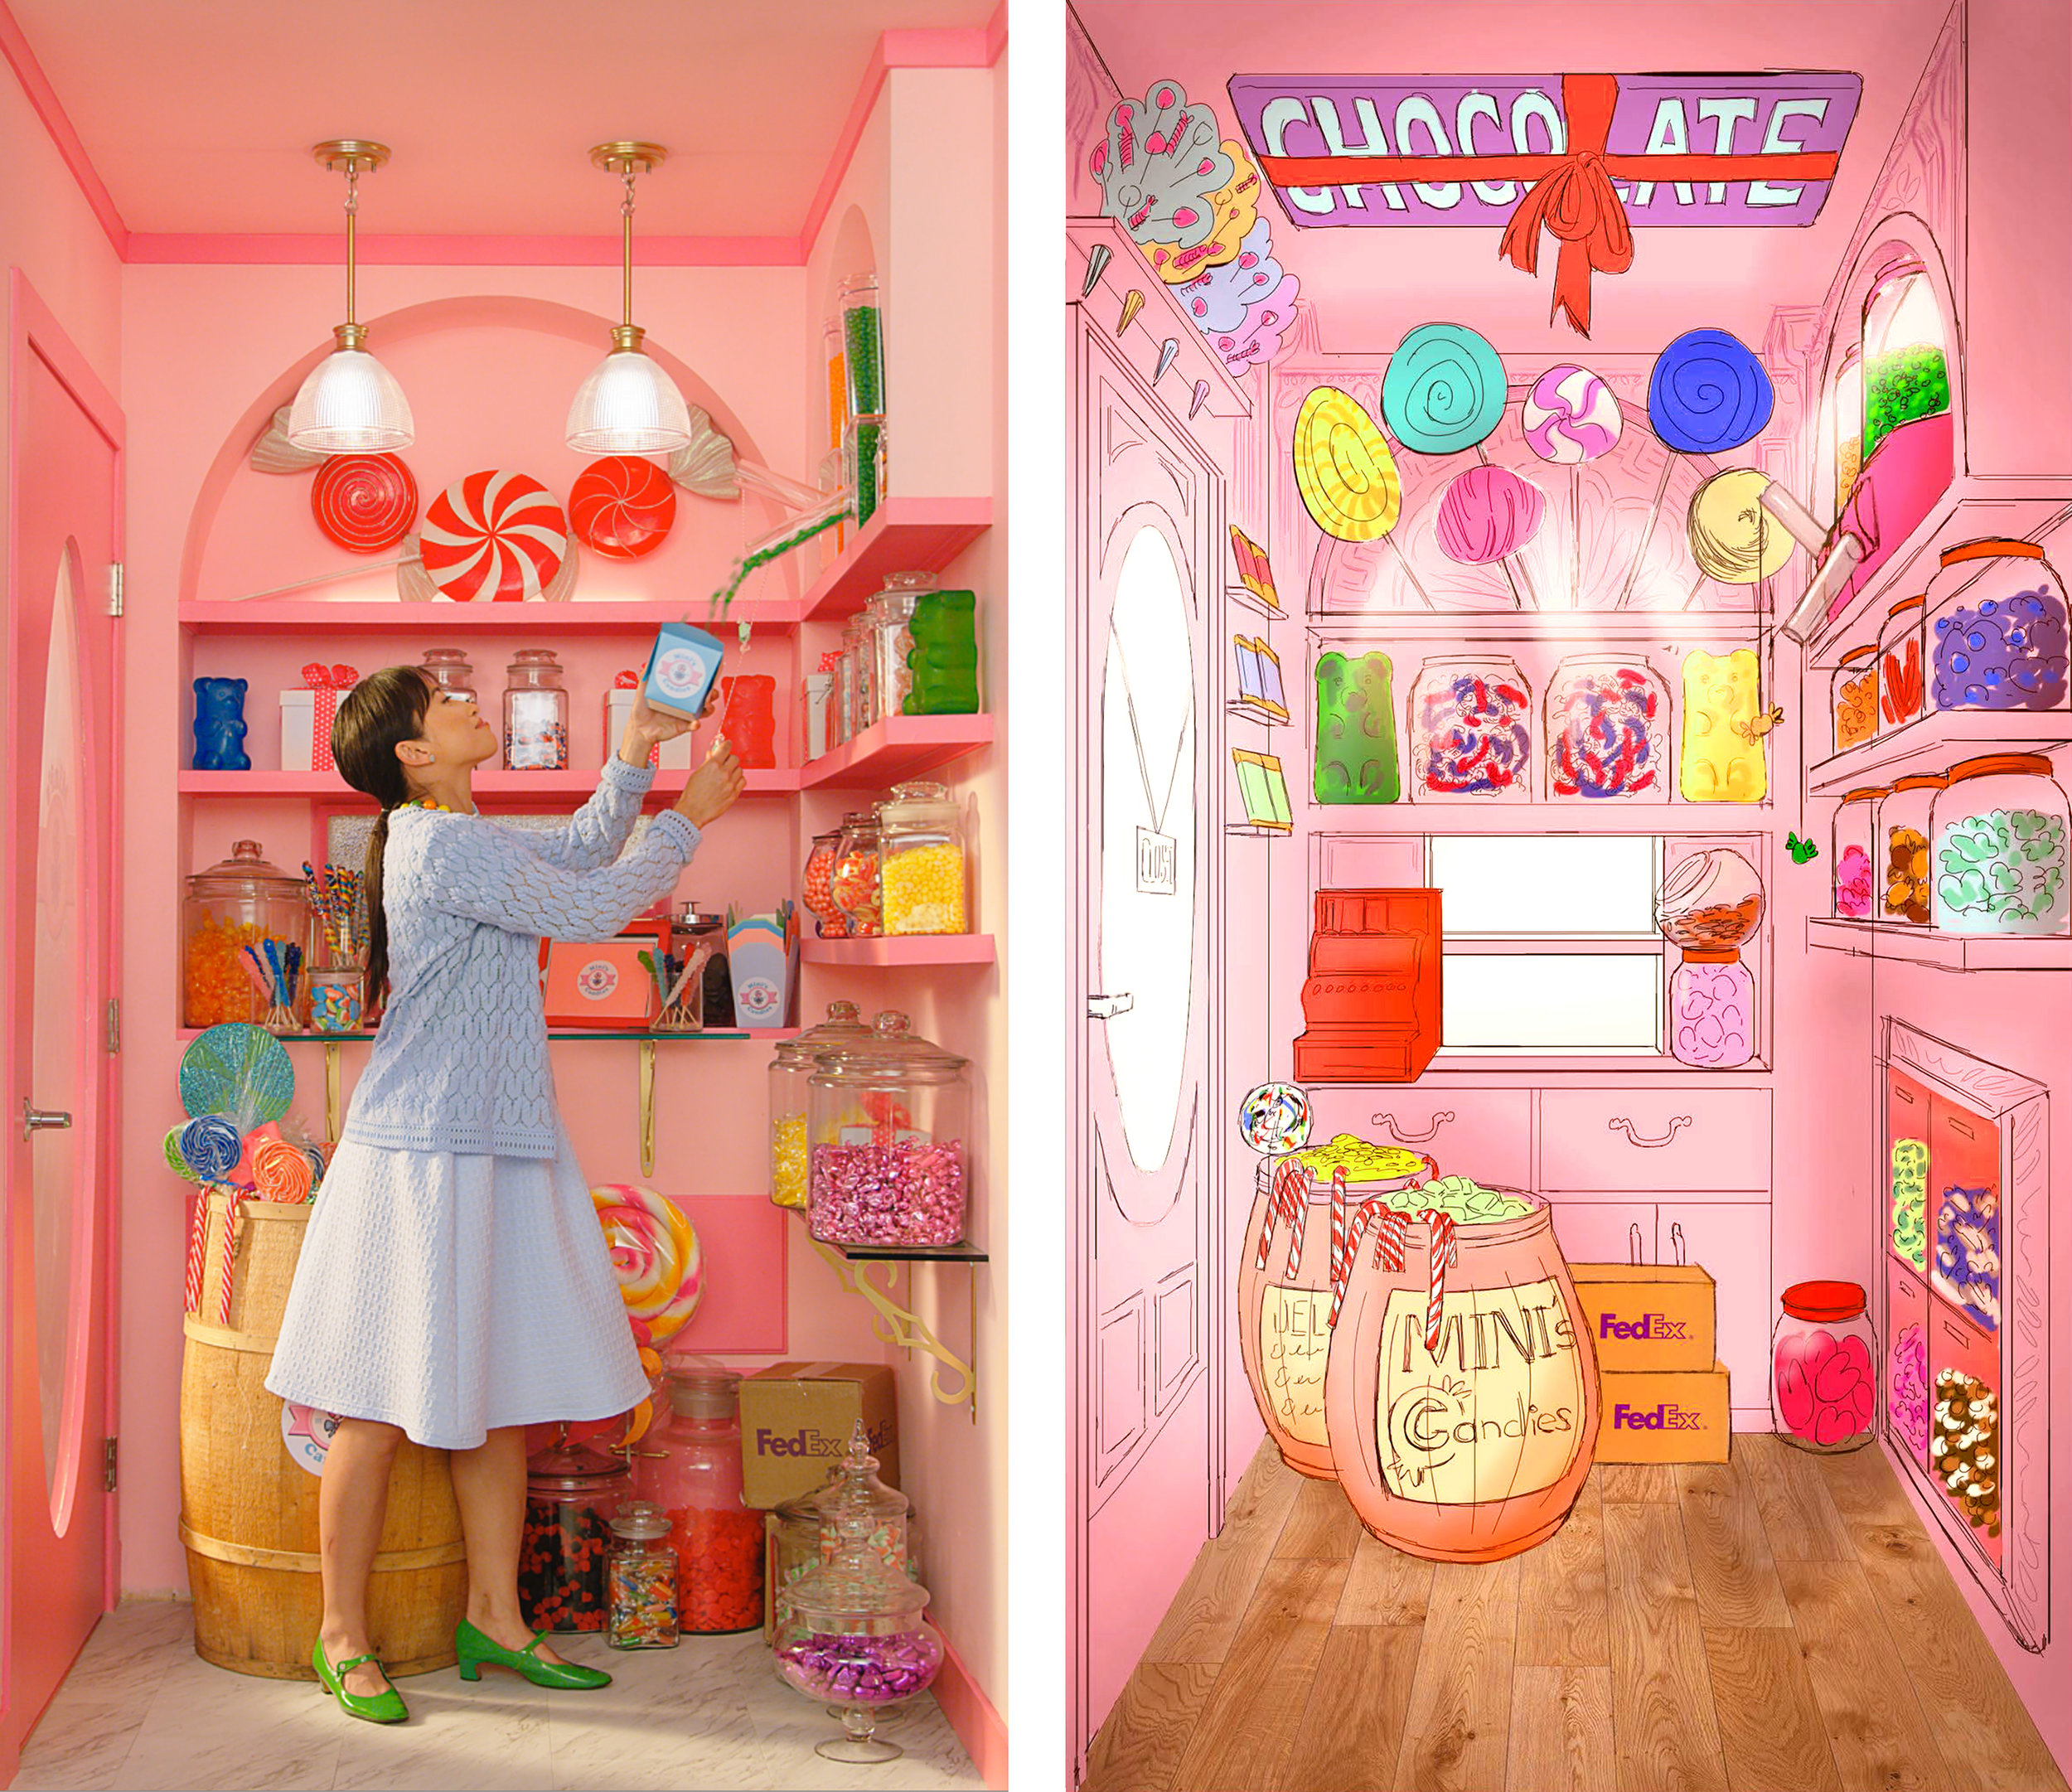 Production illustration by  Thomas Teraoka . Production designer is the fabulous  Michael Fitzgerald . The candy store owner is  Wen Rock .